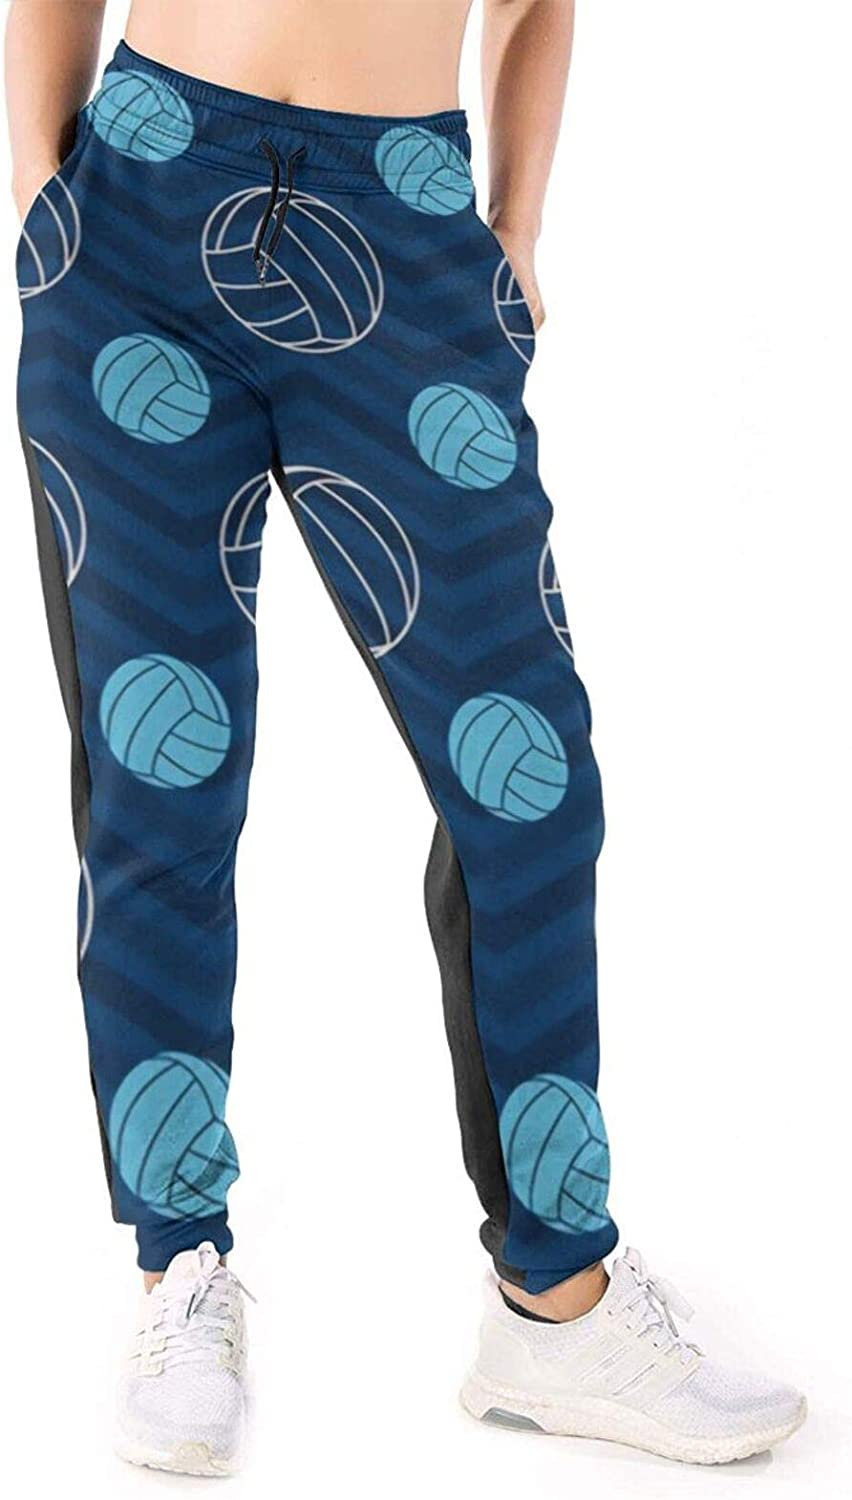 Women Joggers Pants Blue & Tan Chevron Volleyball Ball Athletic Sweatpants with Pockets Casual Trousers Baggy